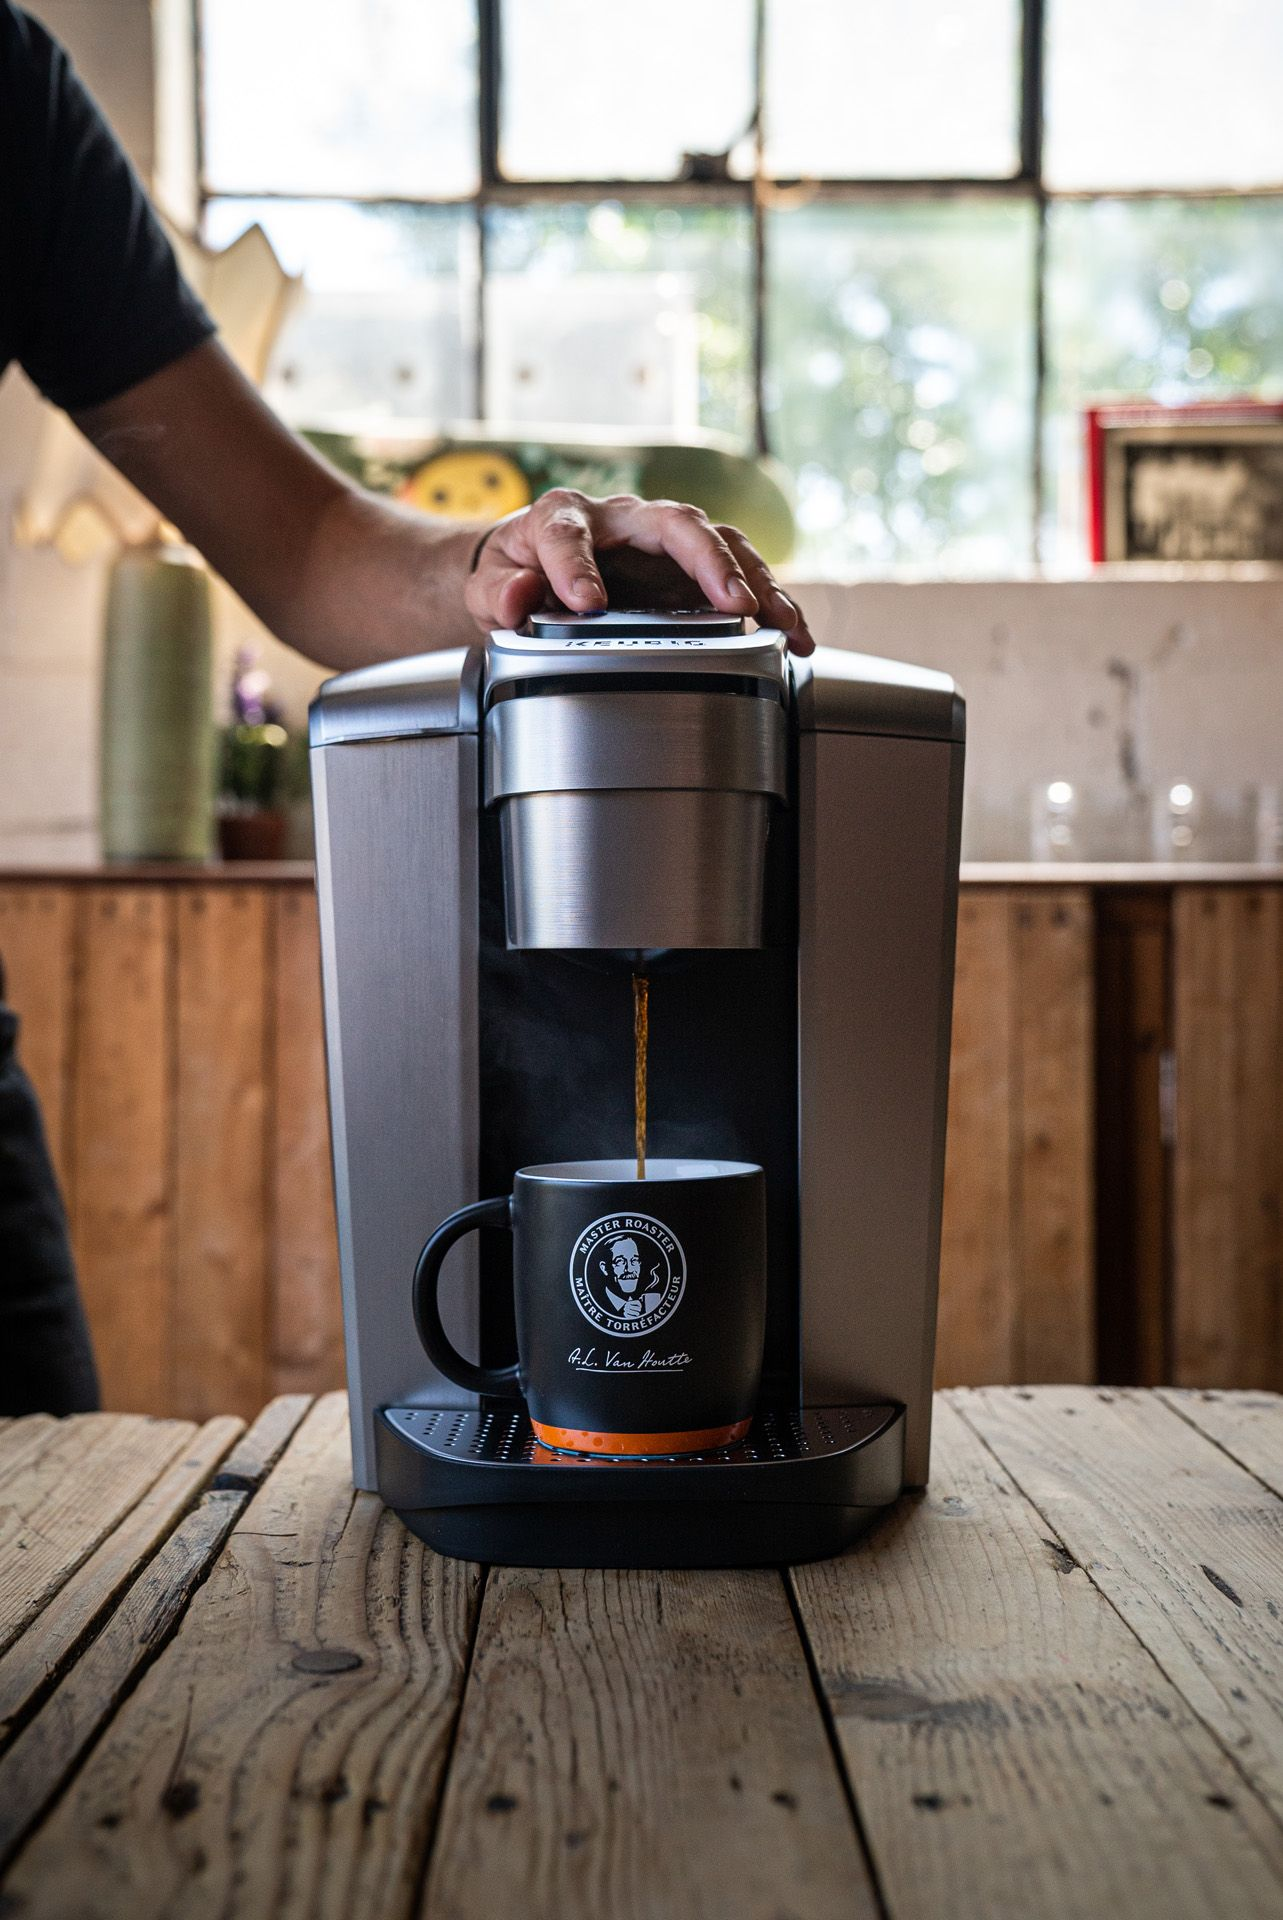 chef Sebastian Harrisson-Cloutier making a coffee with a Keurig machine in a Van Houtte branded cup by Bruno Florin for Van Houtte 100th anniversary